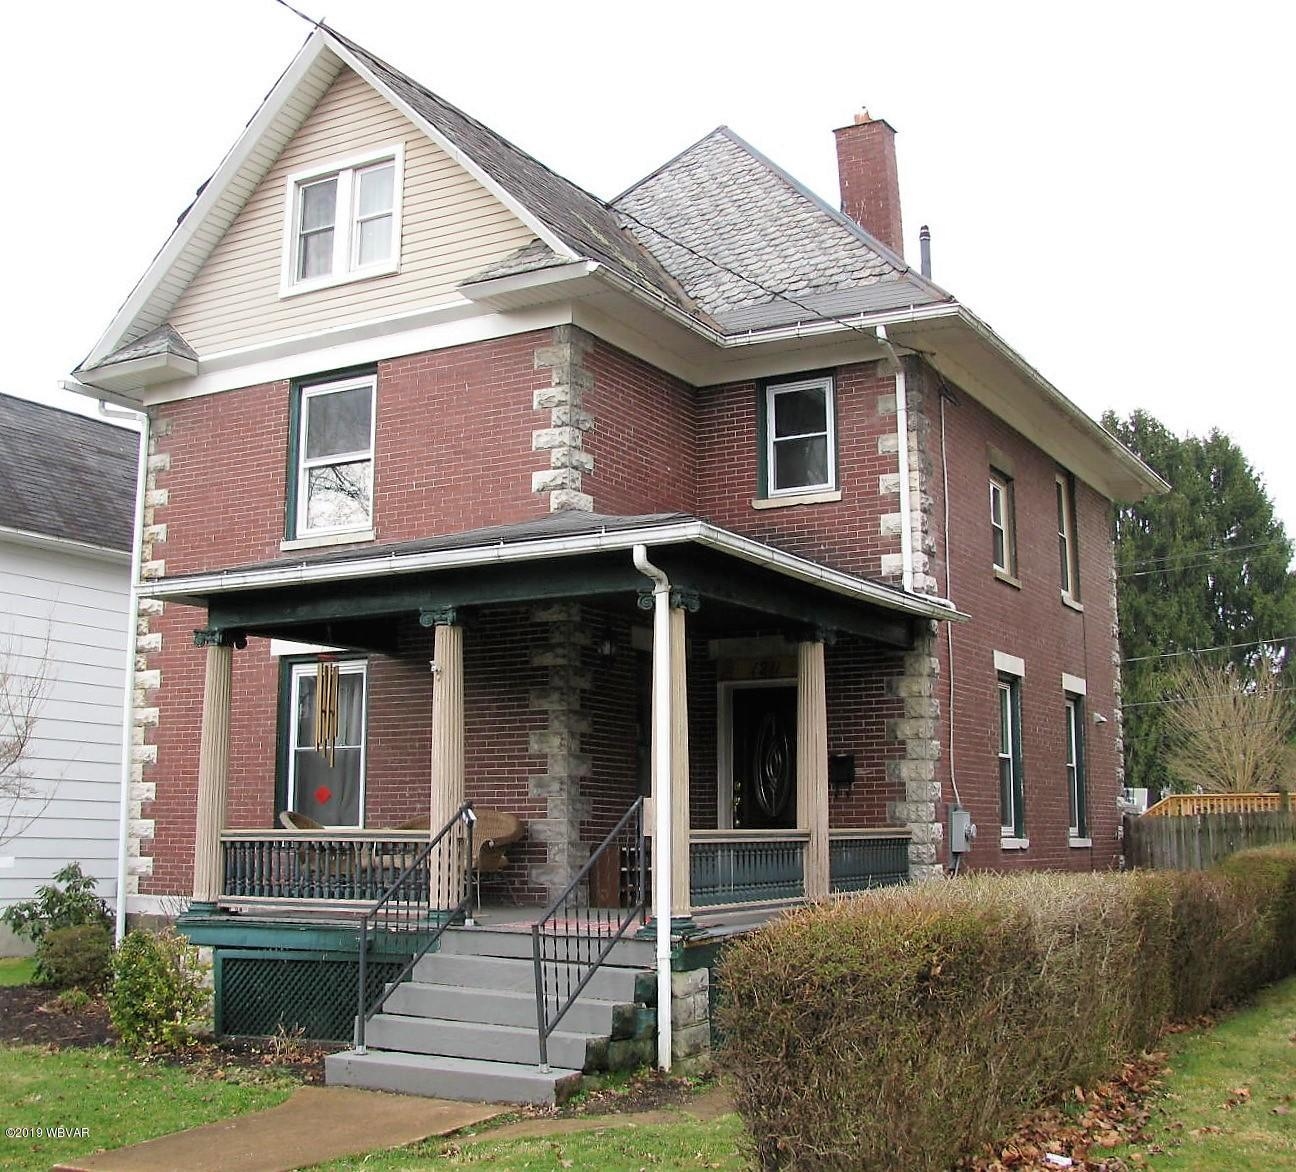 1211 CHERRY STREET,Williamsport,PA 17701,4 Bedrooms Bedrooms,2.5 BathroomsBathrooms,Residential,CHERRY,WB-86917